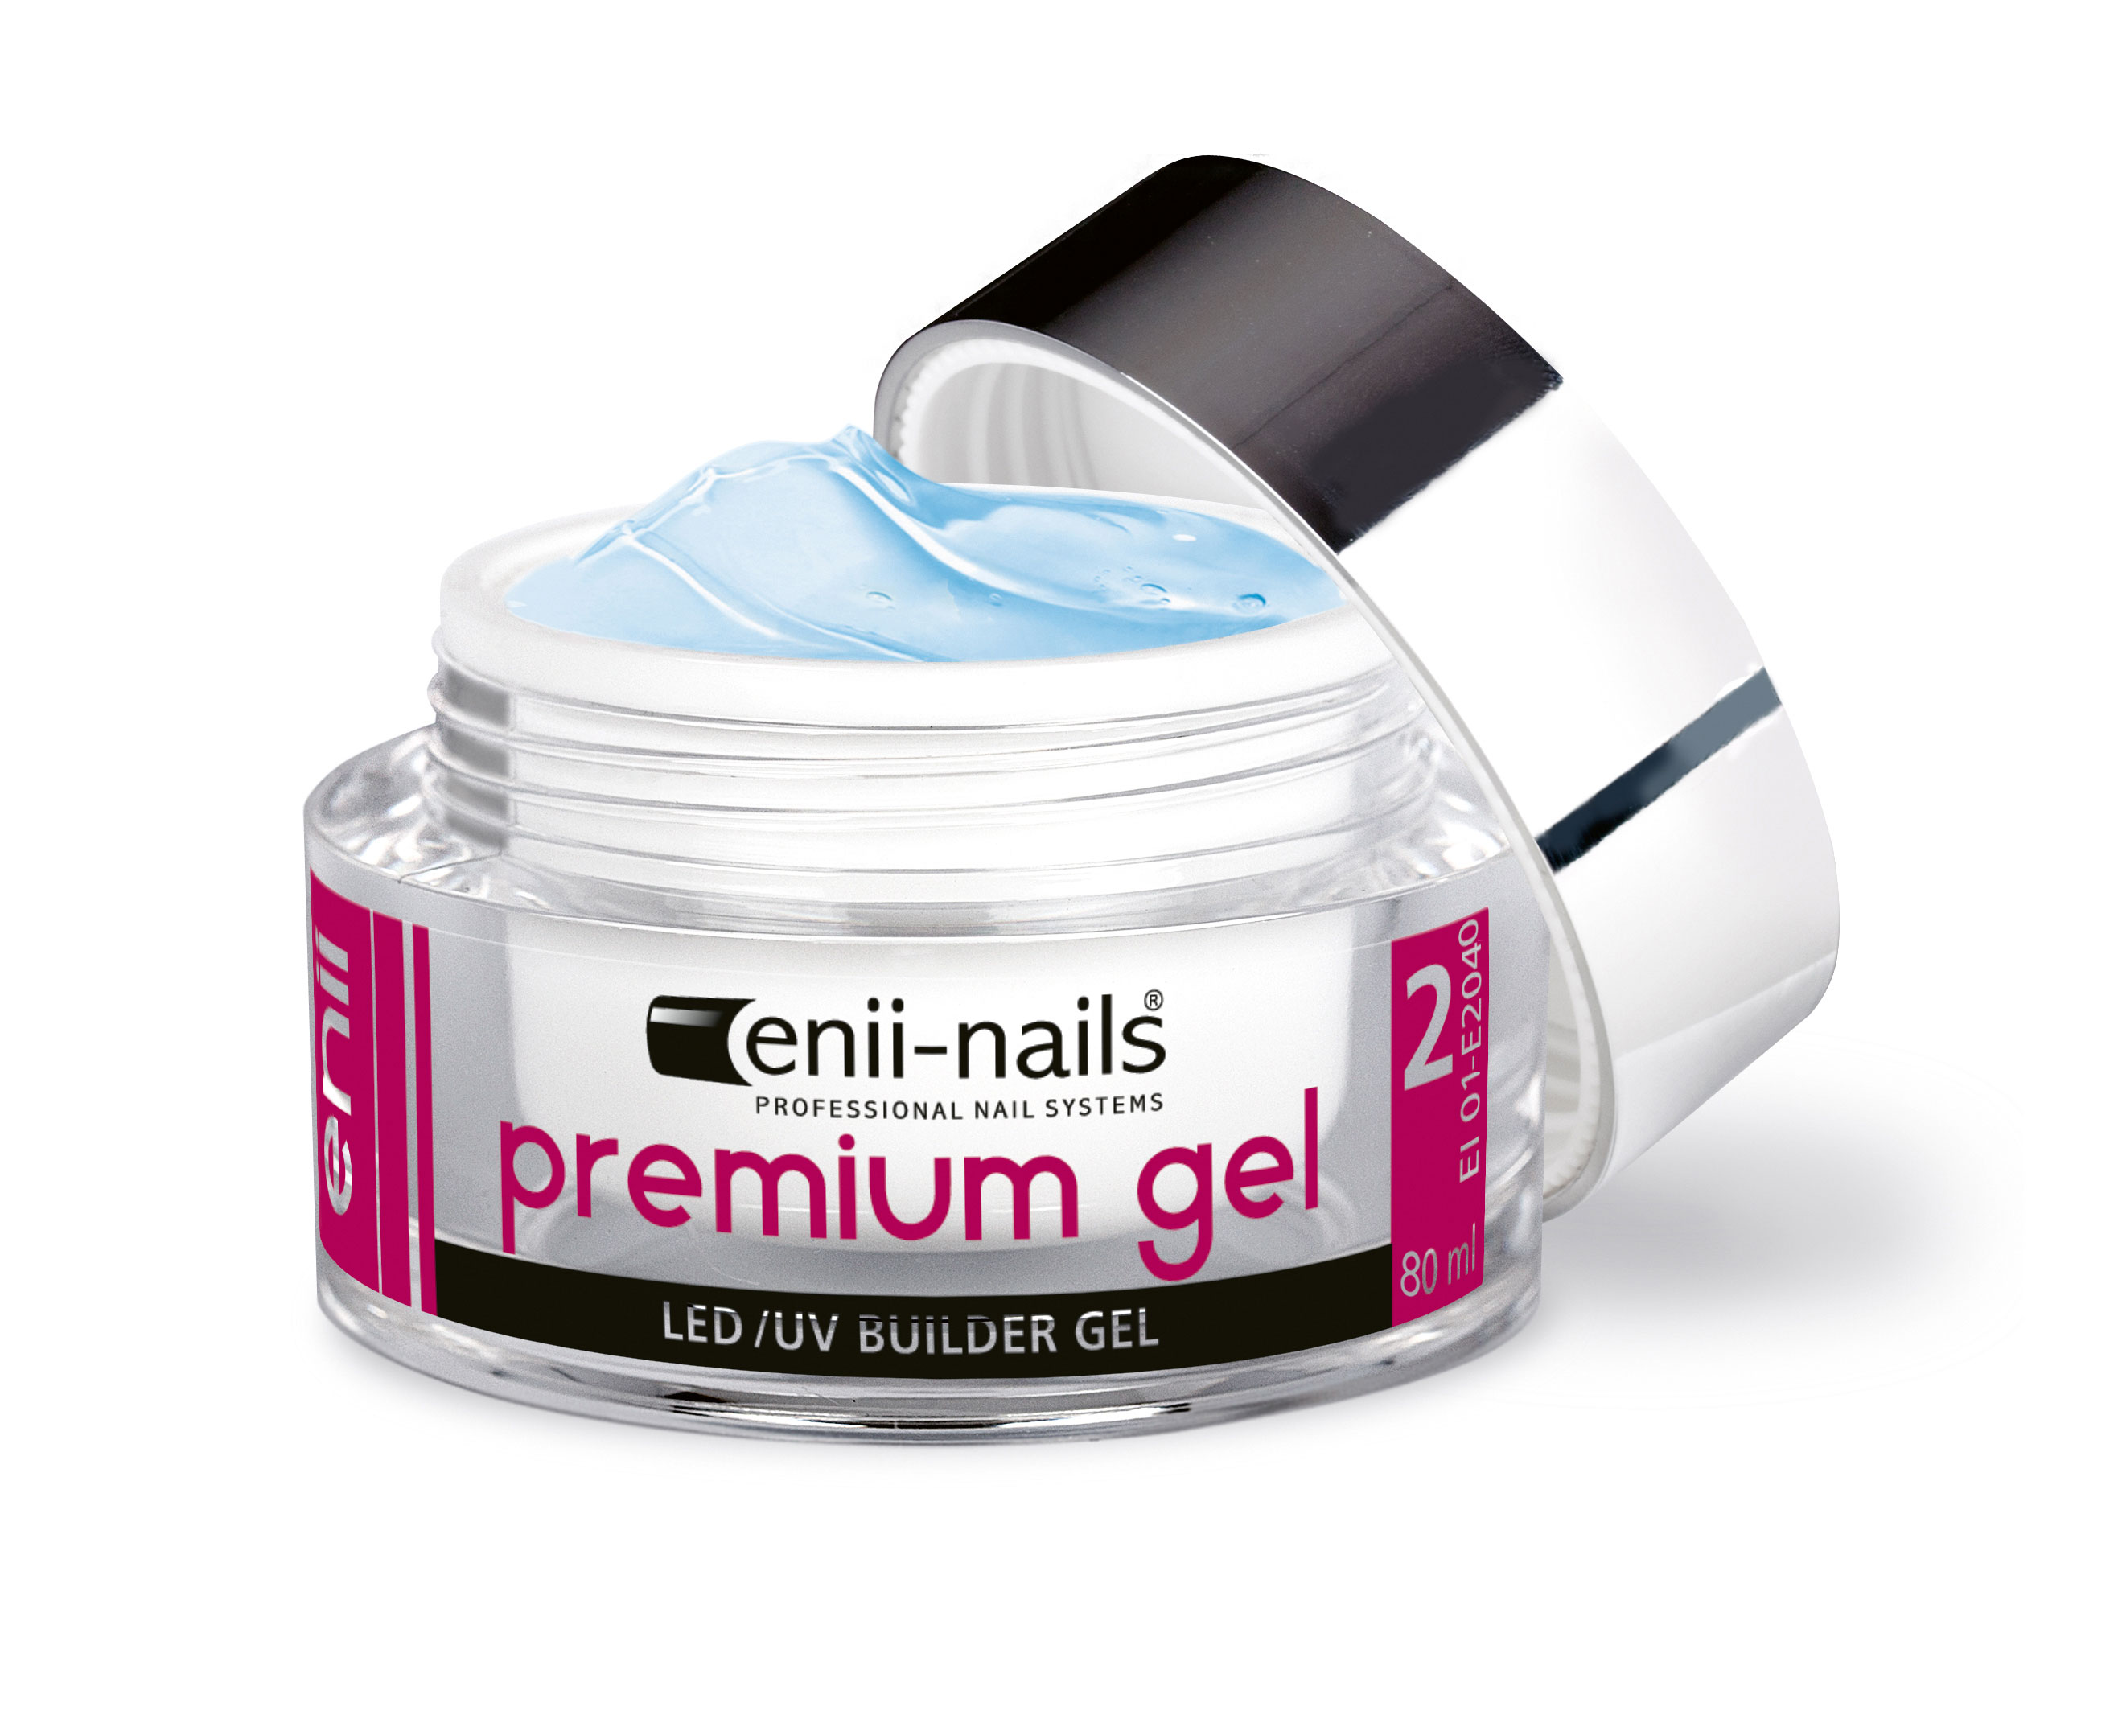 ENII-NAILS ENII PREMIUM 80 ml